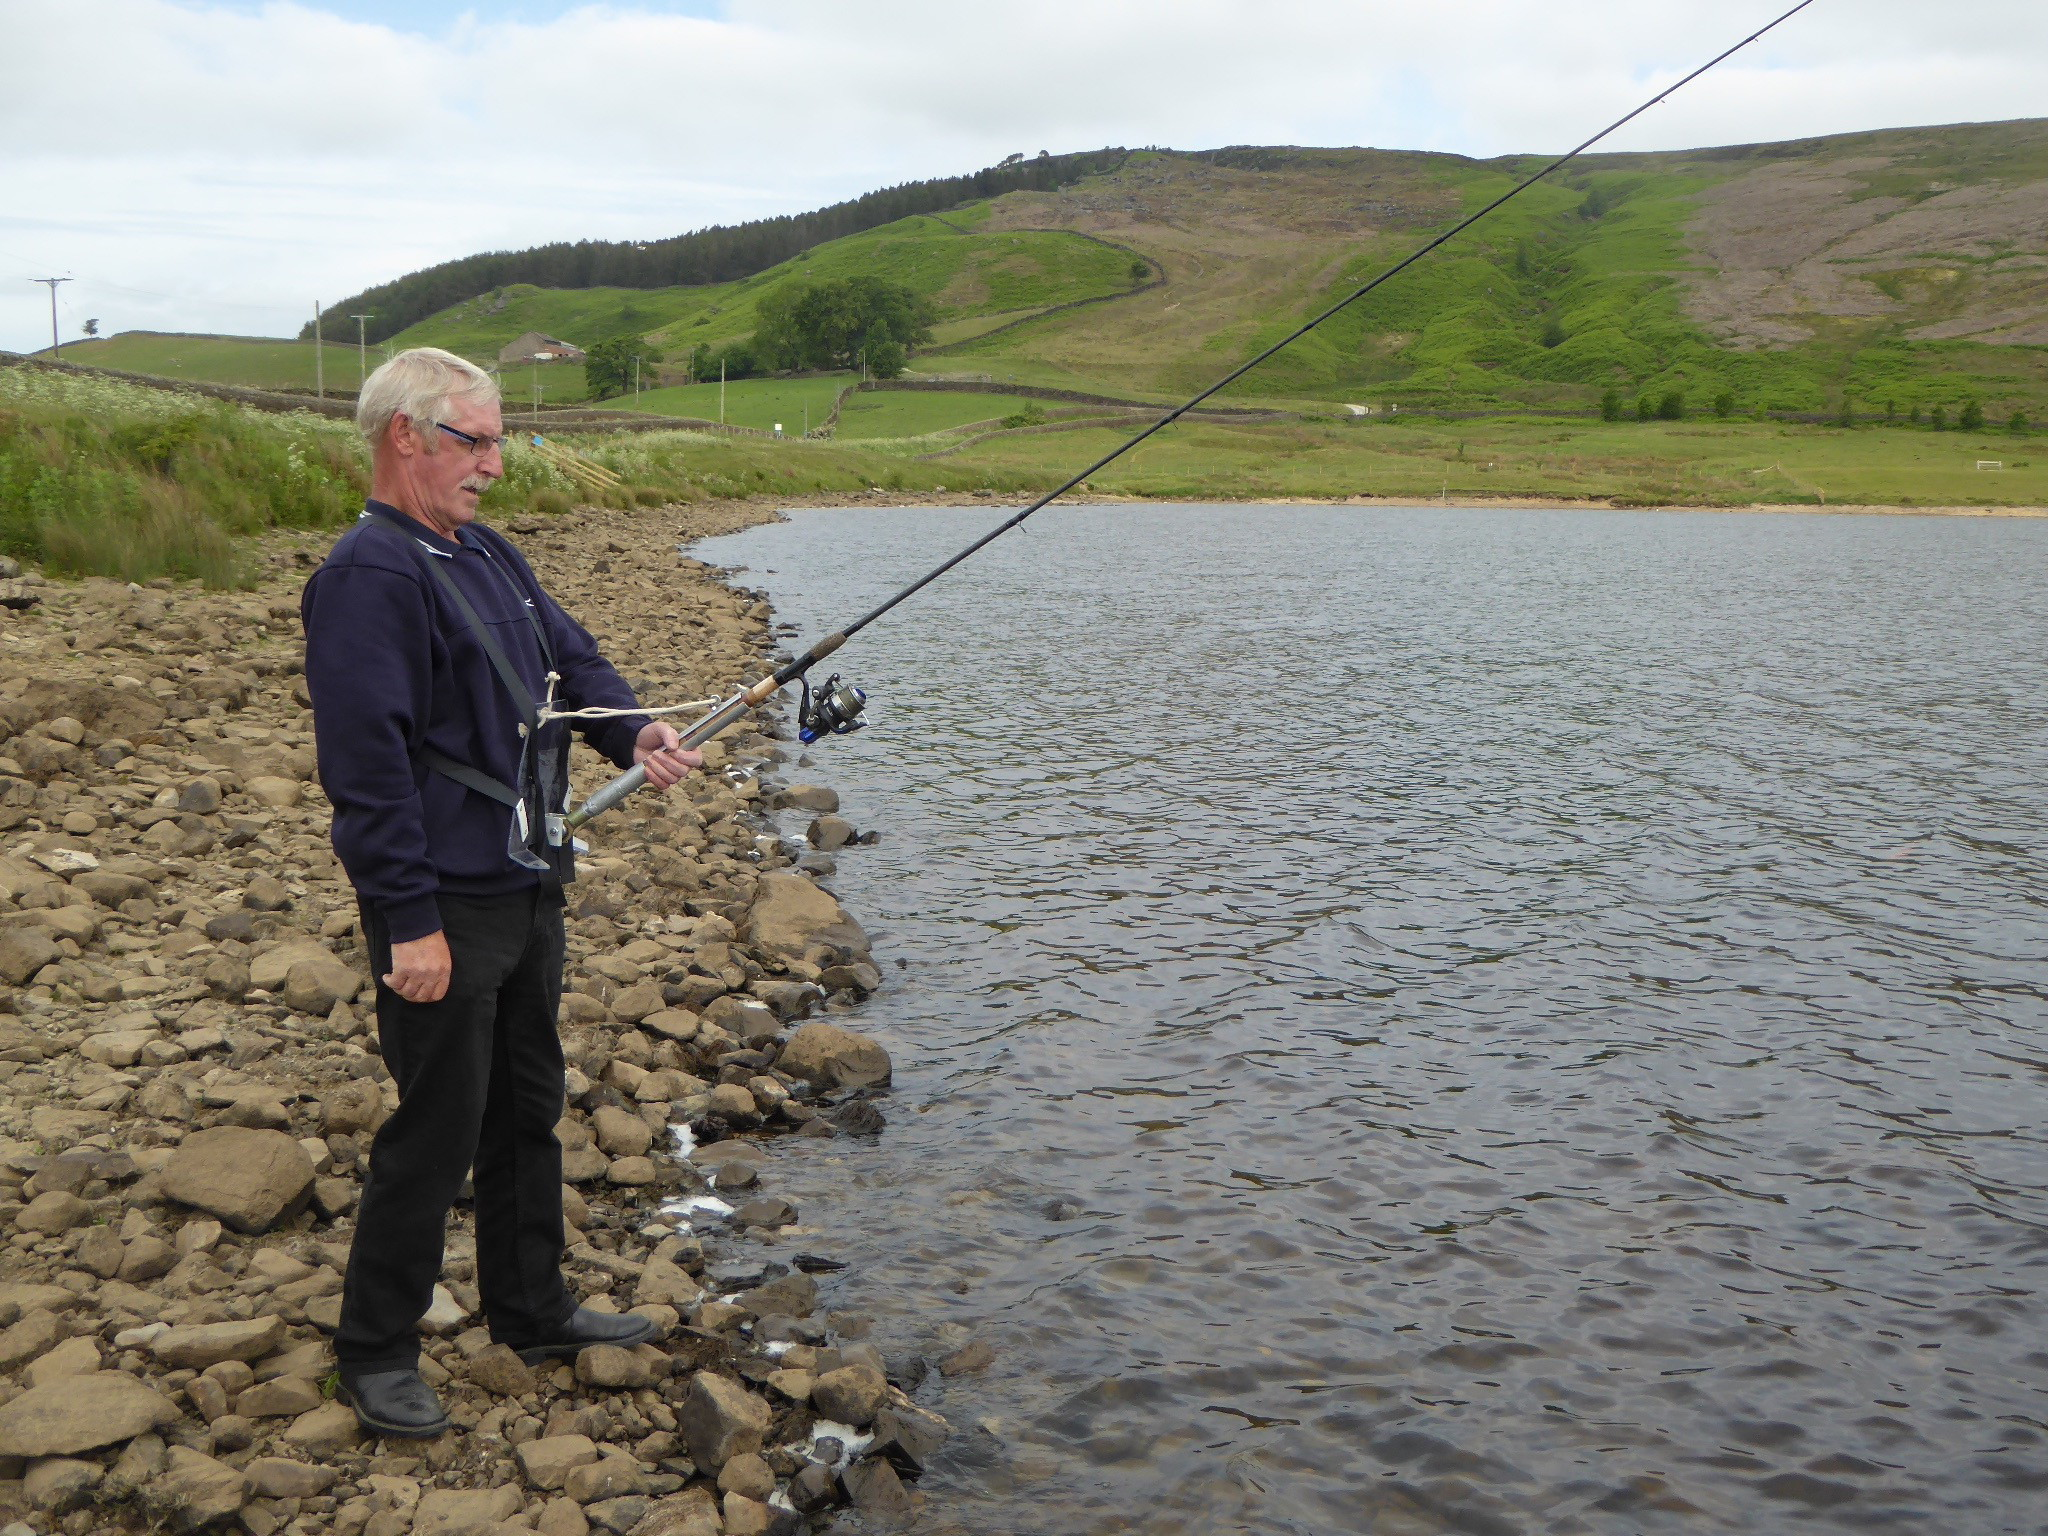 Mark Bradley with his new fishing aid